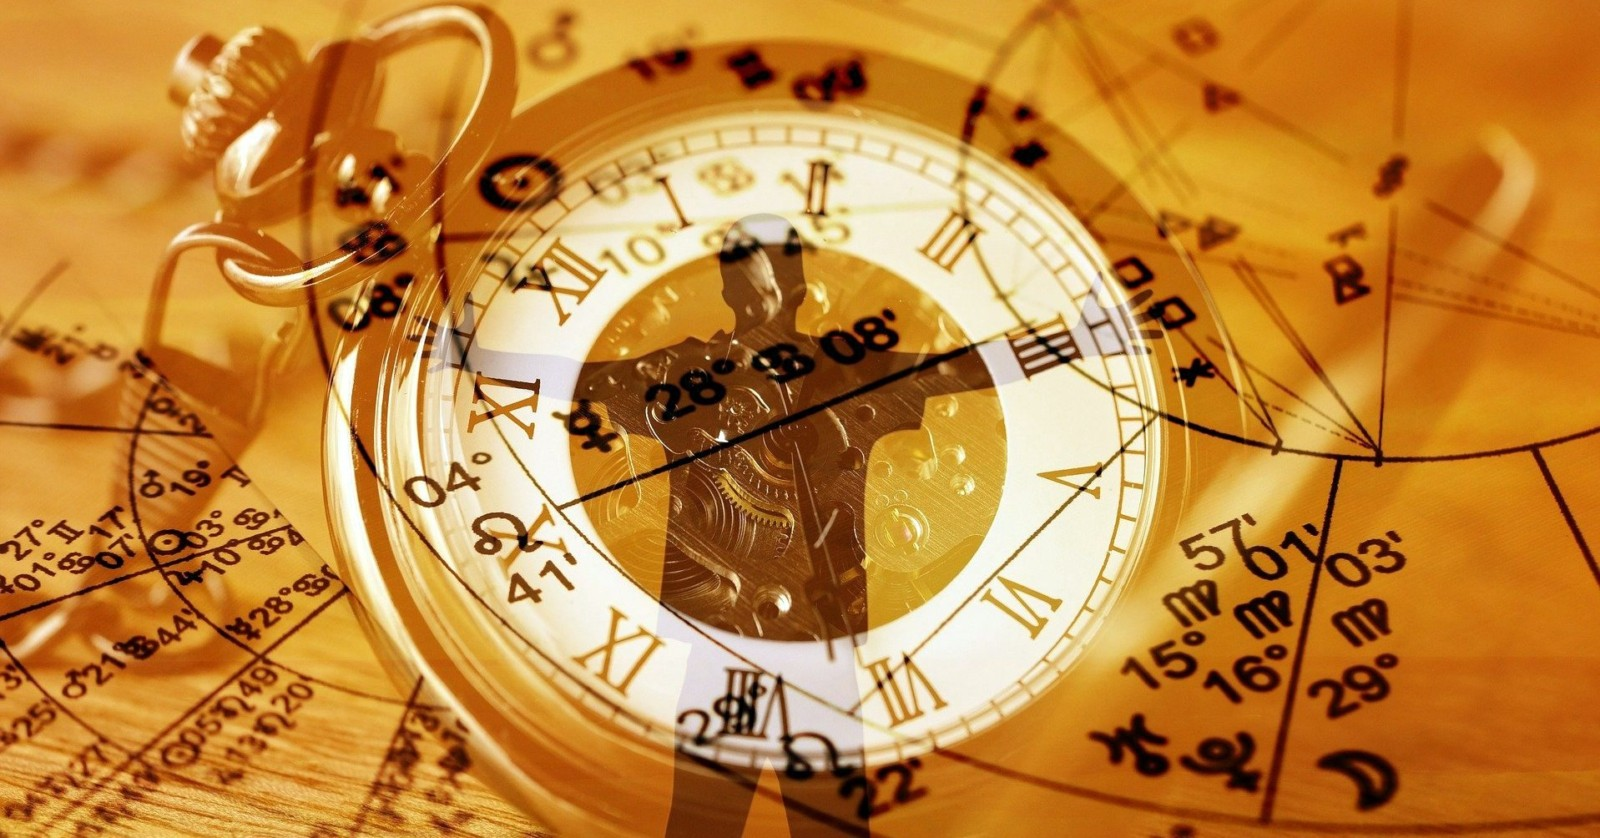 Astrological map, clock and sceptical person - a metaphorical illustration of the Twitter name